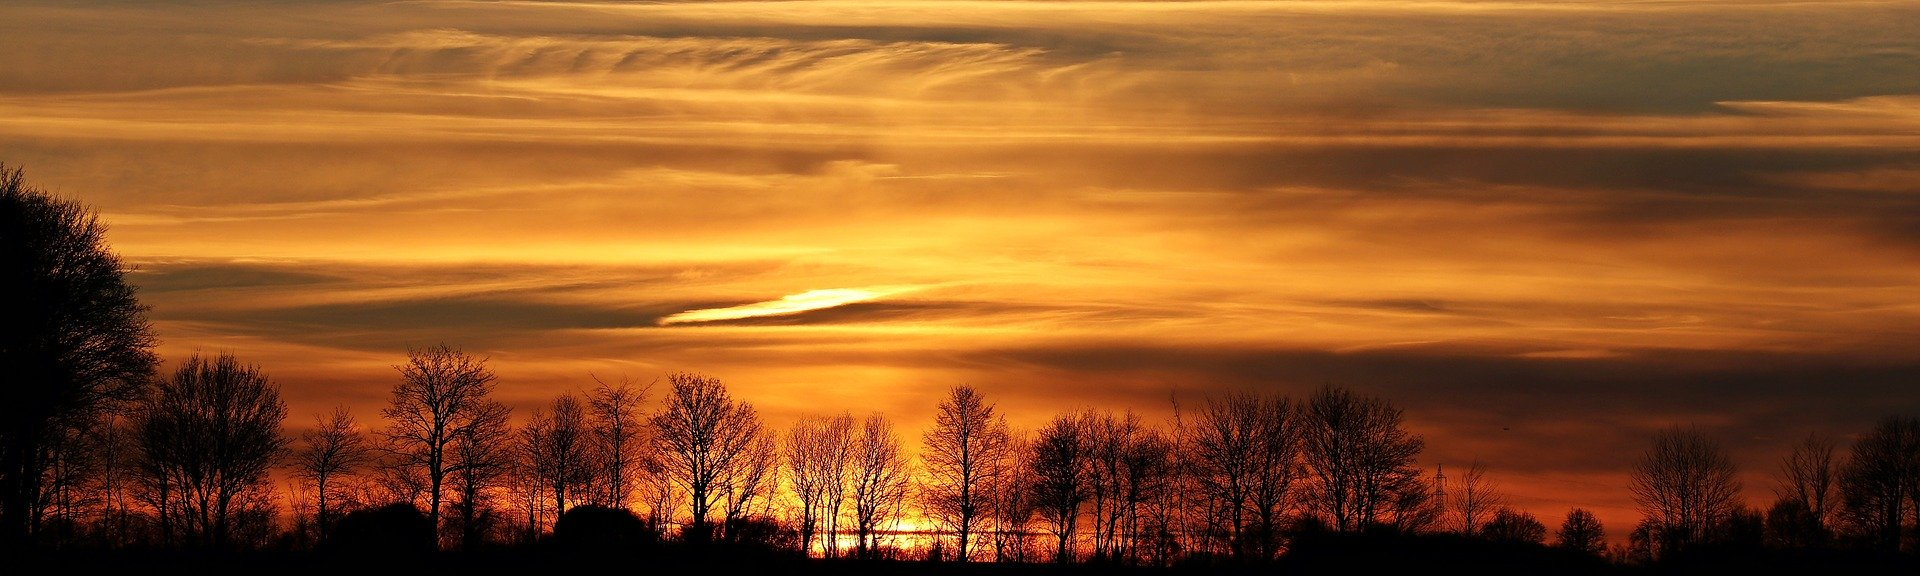 picture of sunset over trees